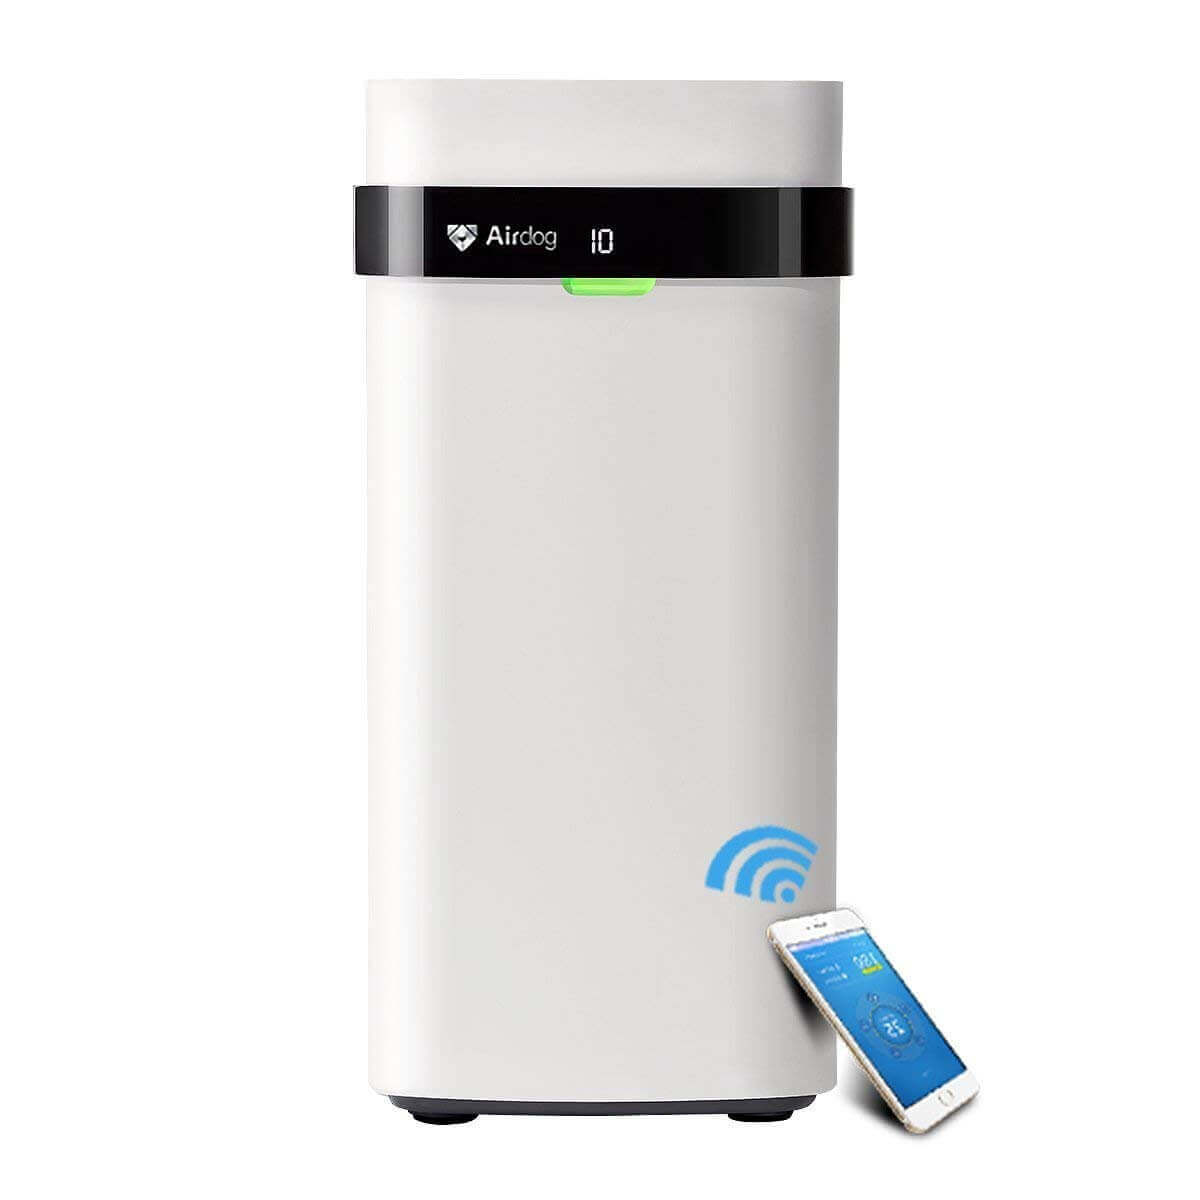 Airdog X5 air purifier for asthma and allergy